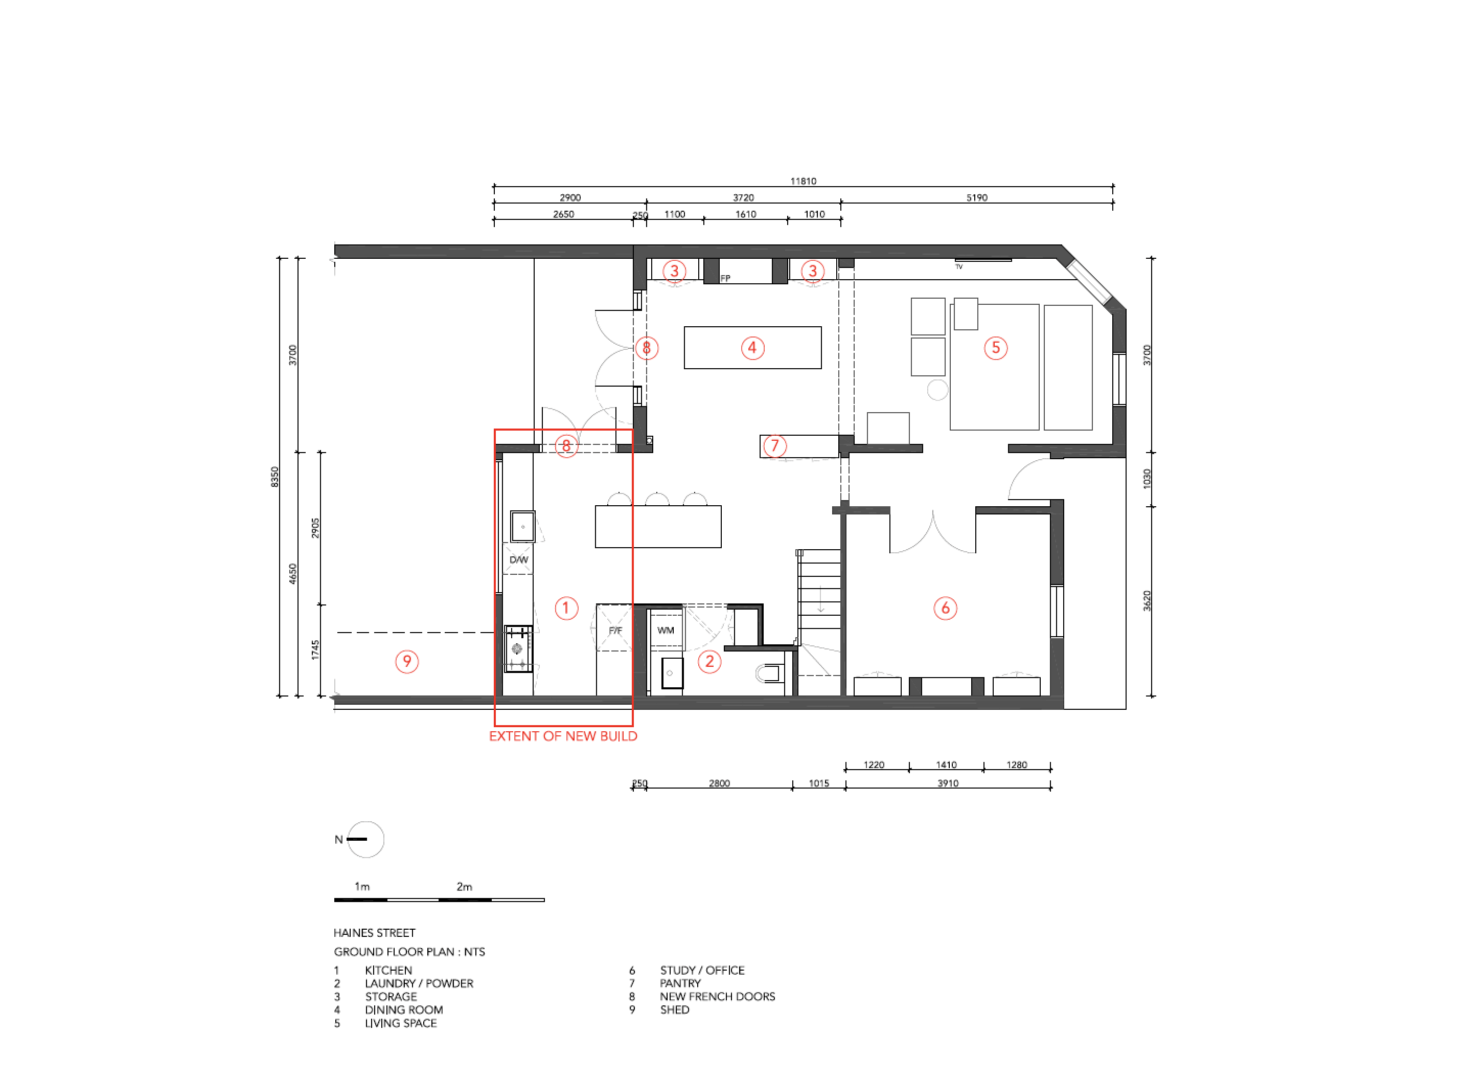 The ground floor plan highlights the kitchen extension.